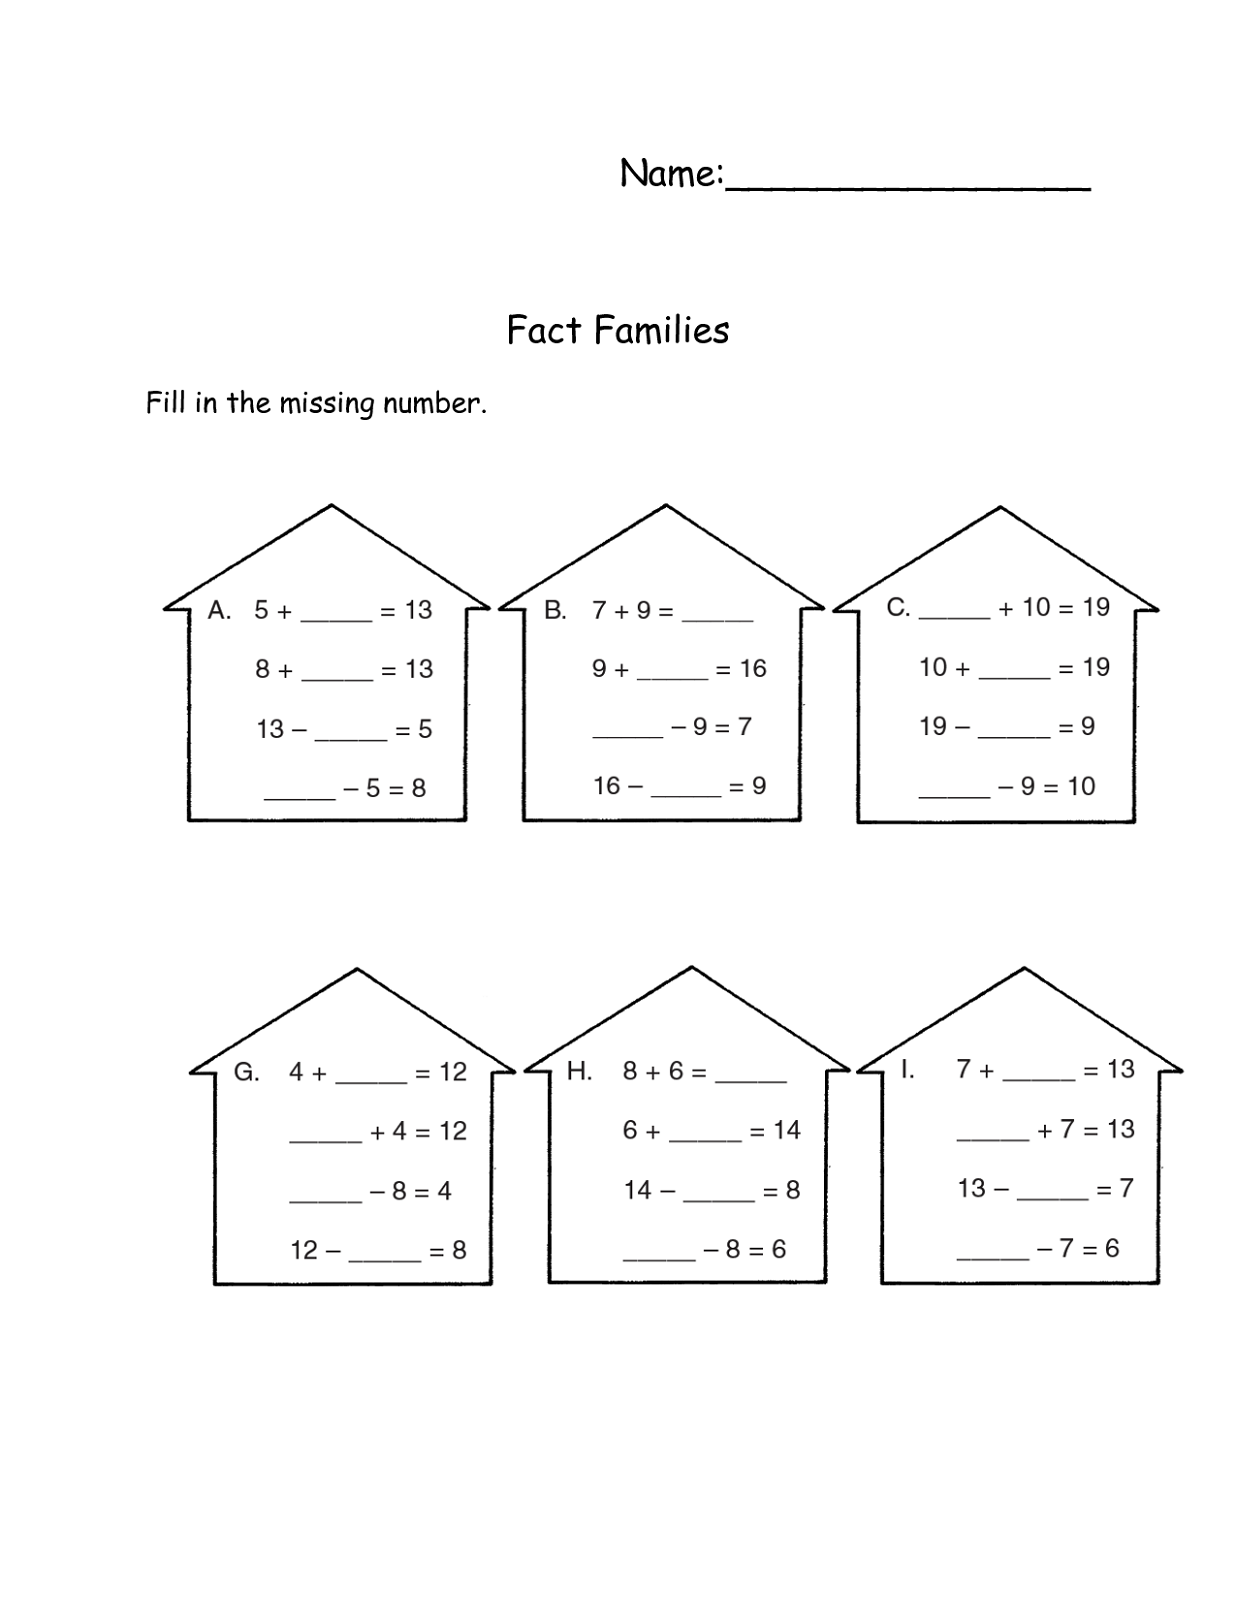 worksheet Addition Fact Family Worksheets fact family worksheets to print activity shelter worksheet missing